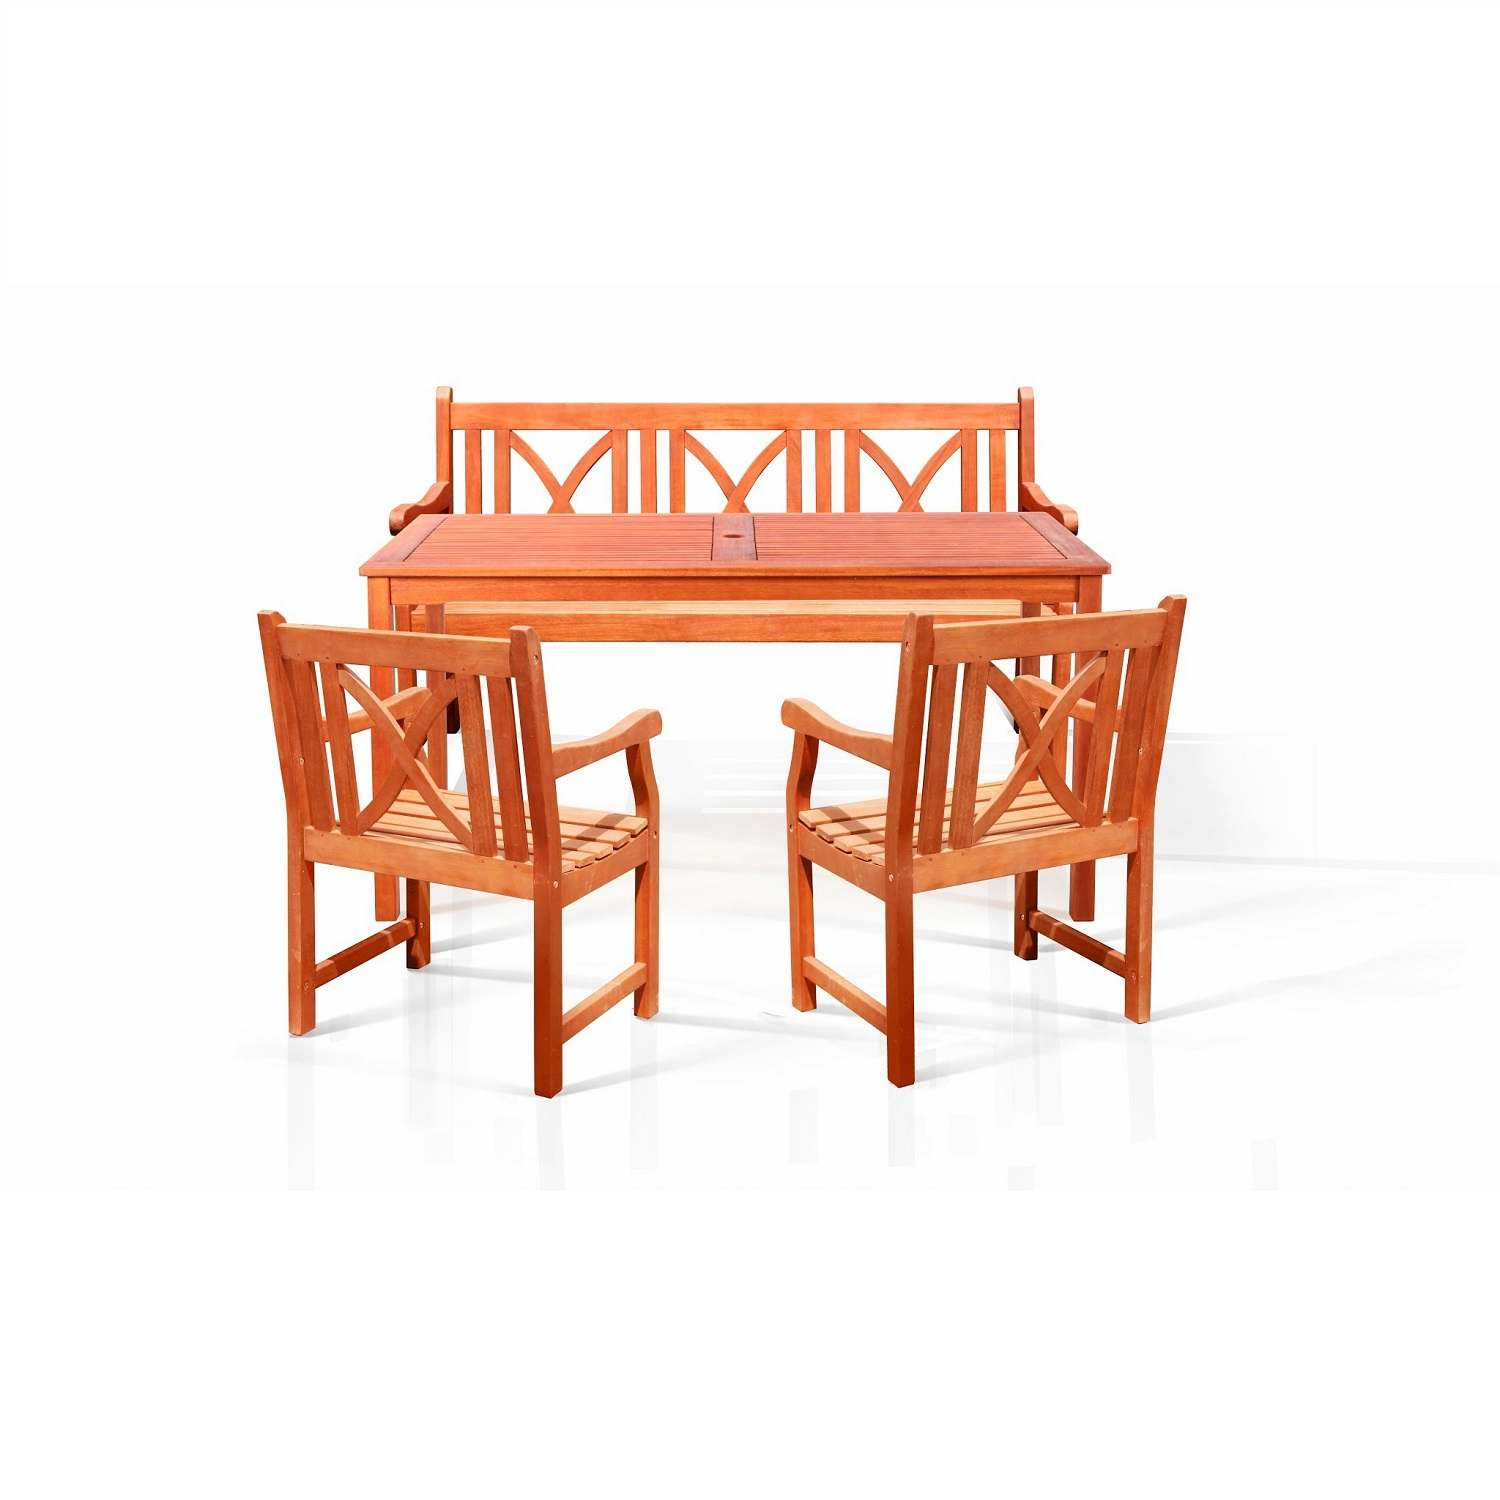 4-Piece Outdoor Eucalyptus Dining Room Set by DVG